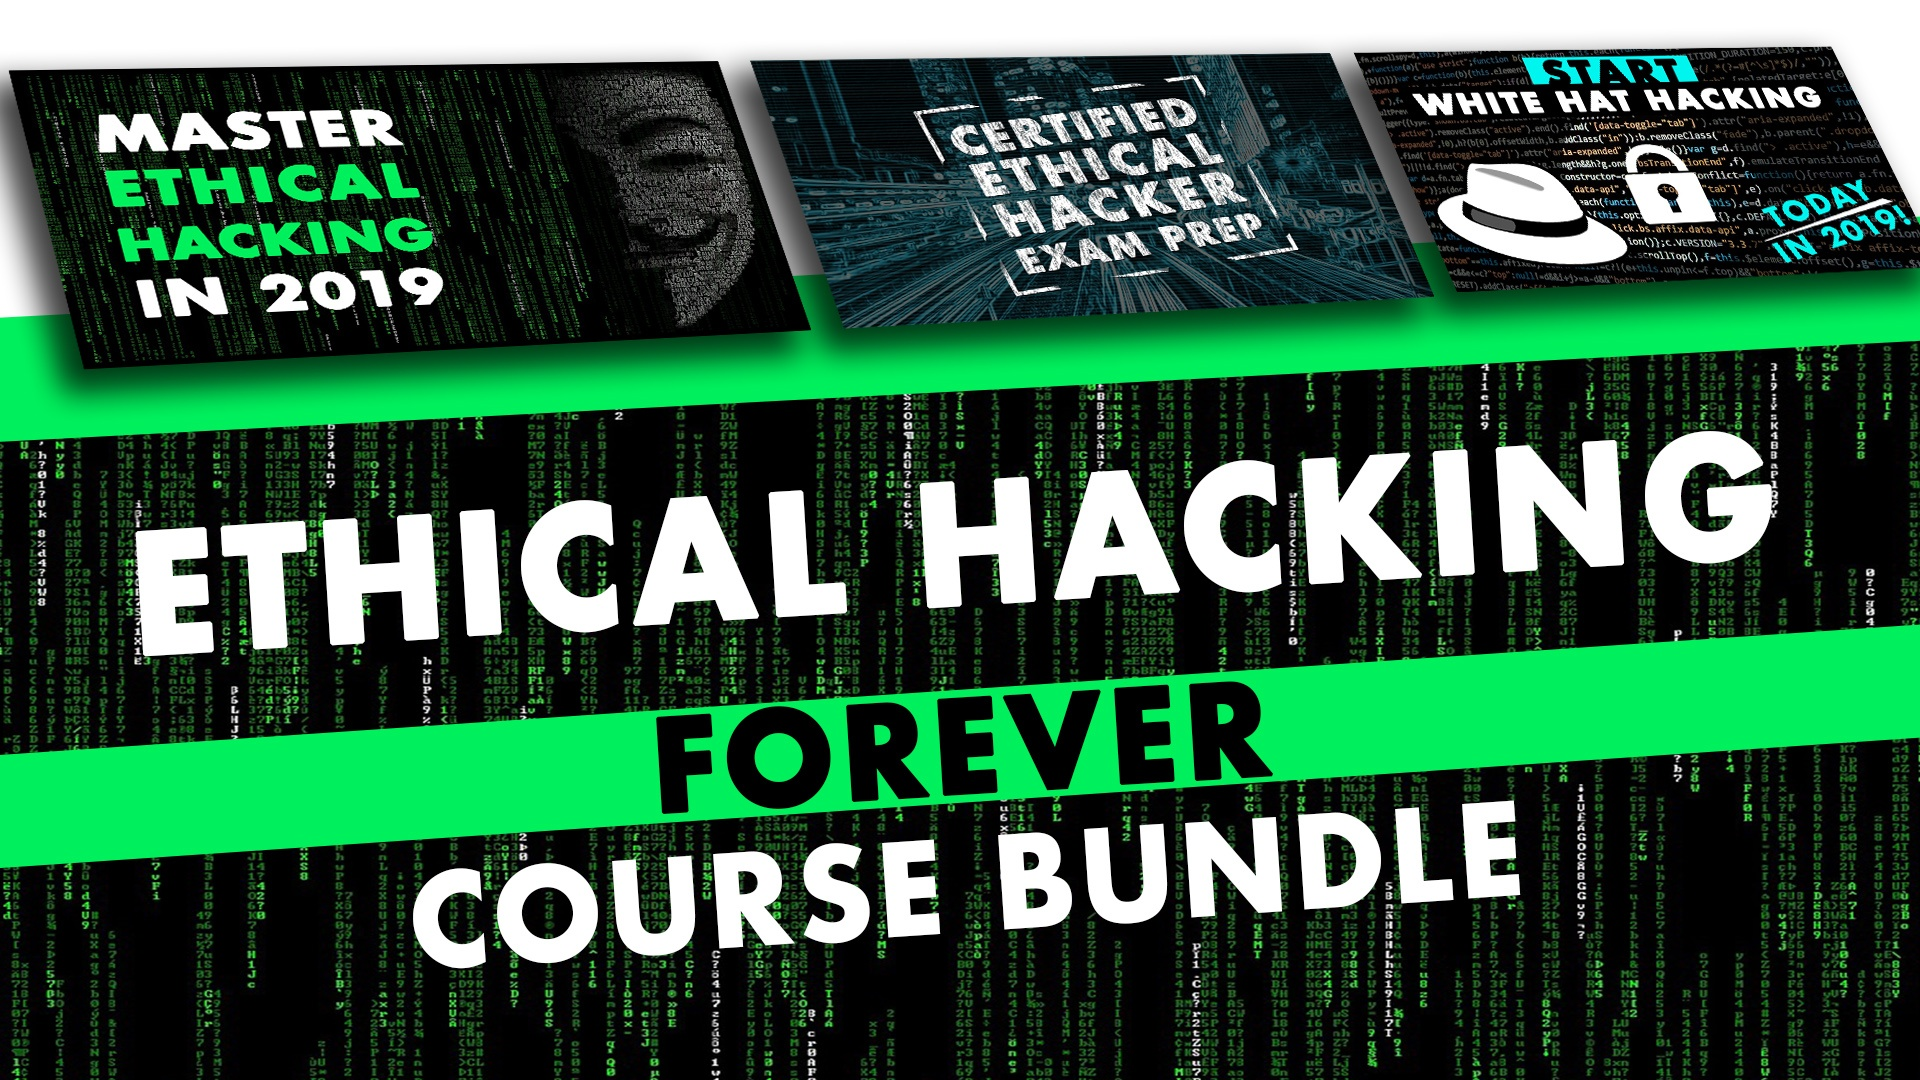 Ethical Hacking Forever Course Bundle